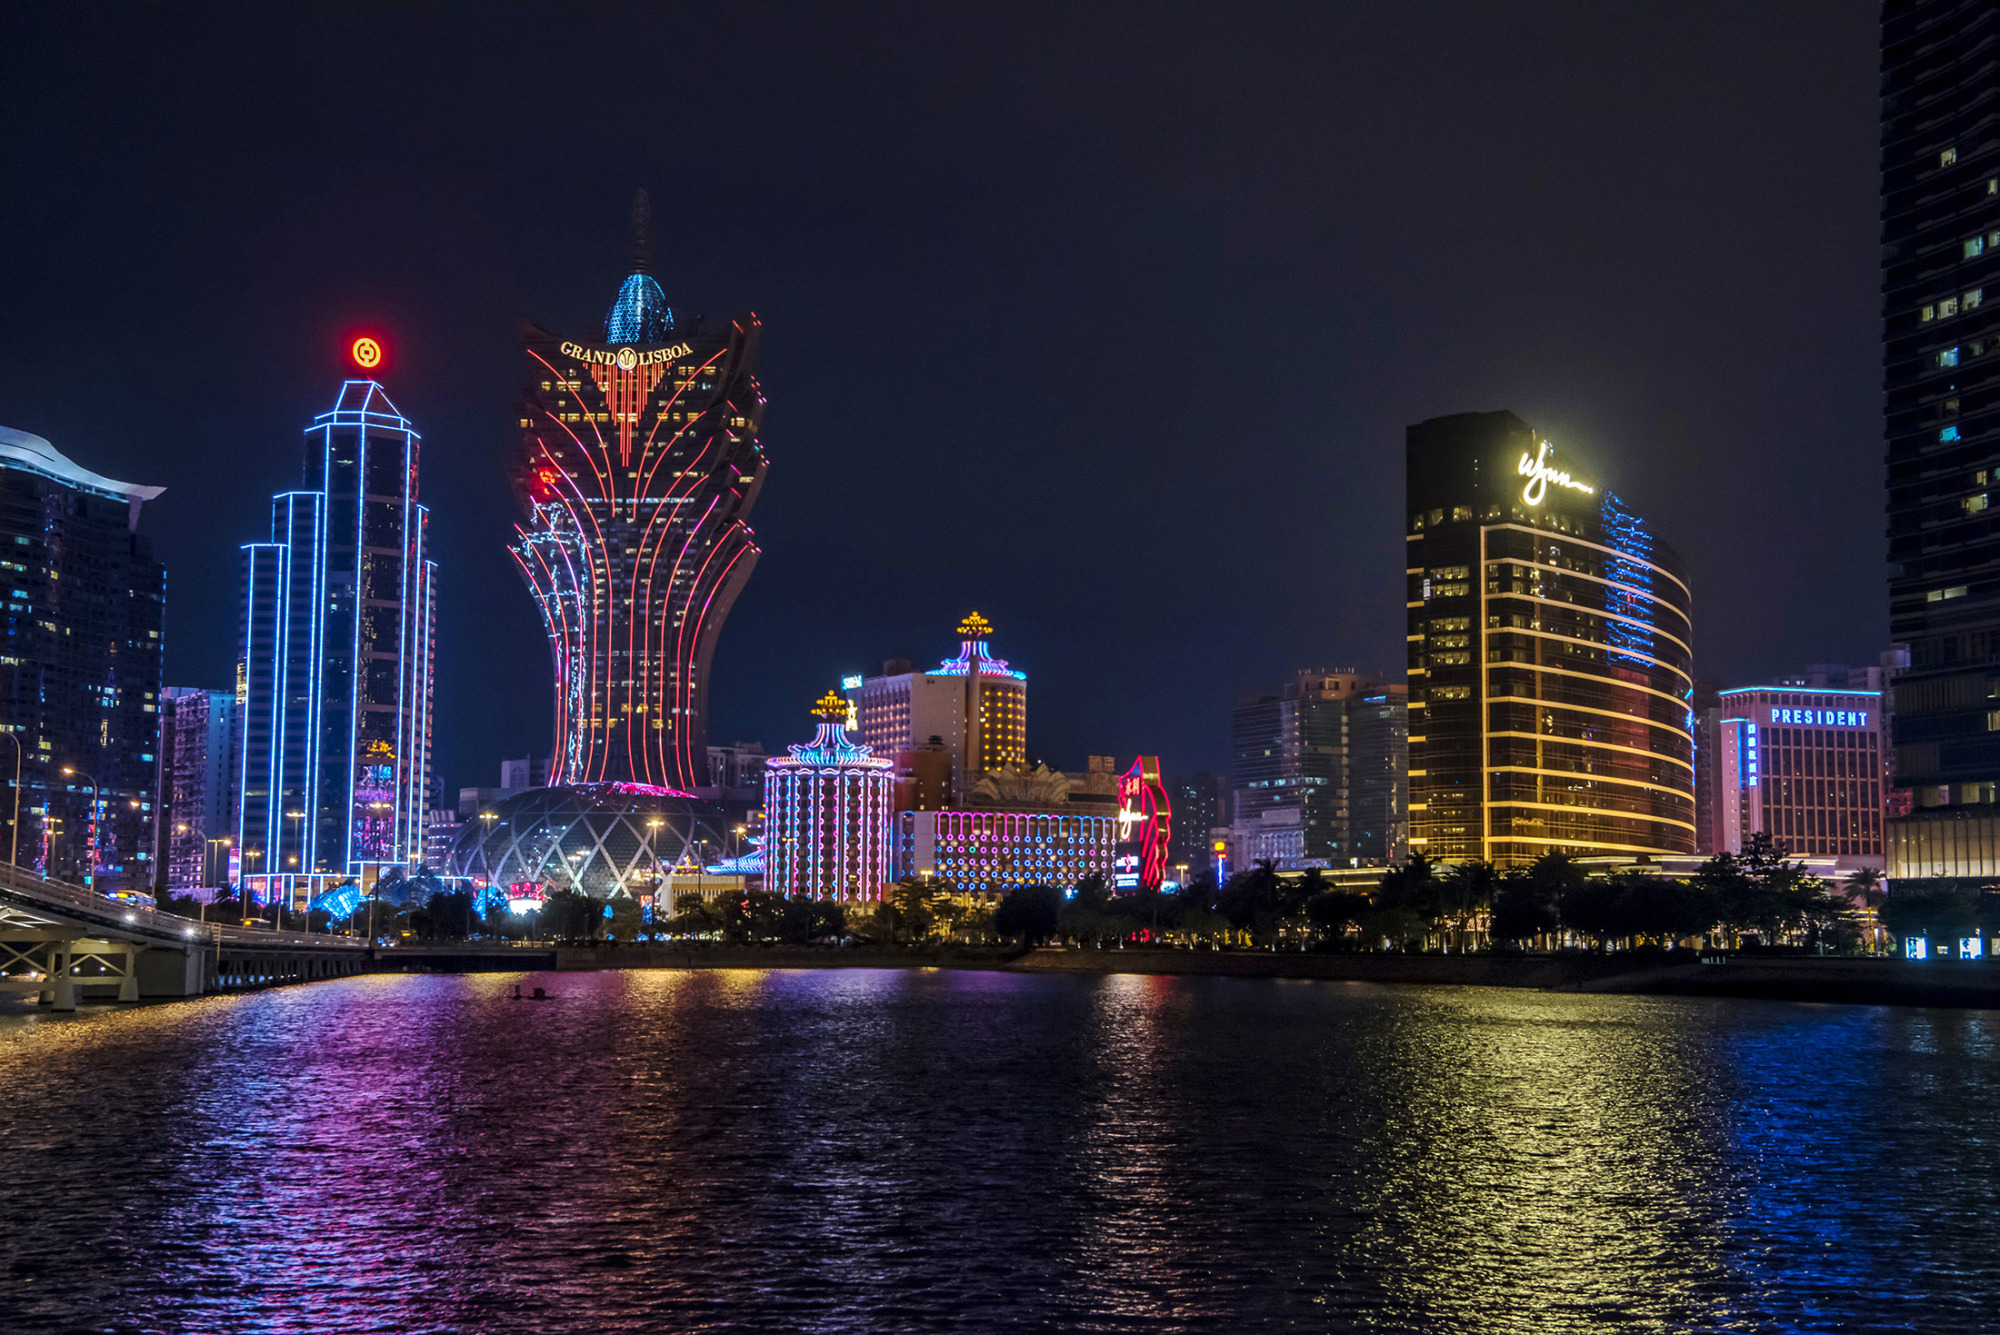 Macau casino | All the action from the casino floor: news, views and more